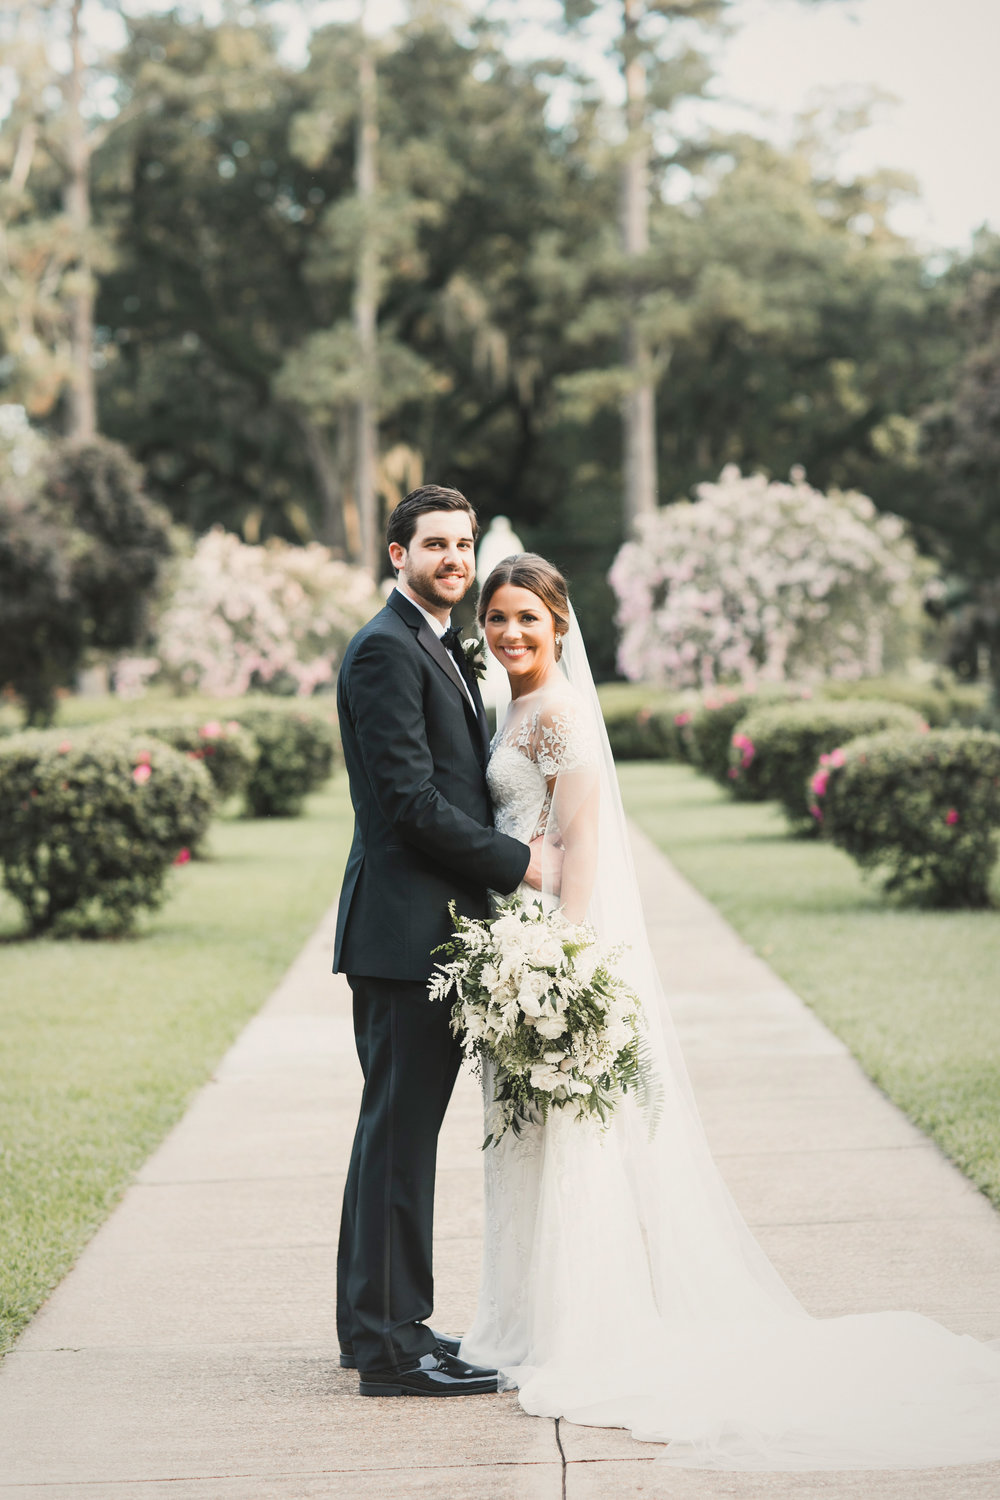 Daigle_Lafayette_Louisiana_Wedding_Planner-0489.jpg